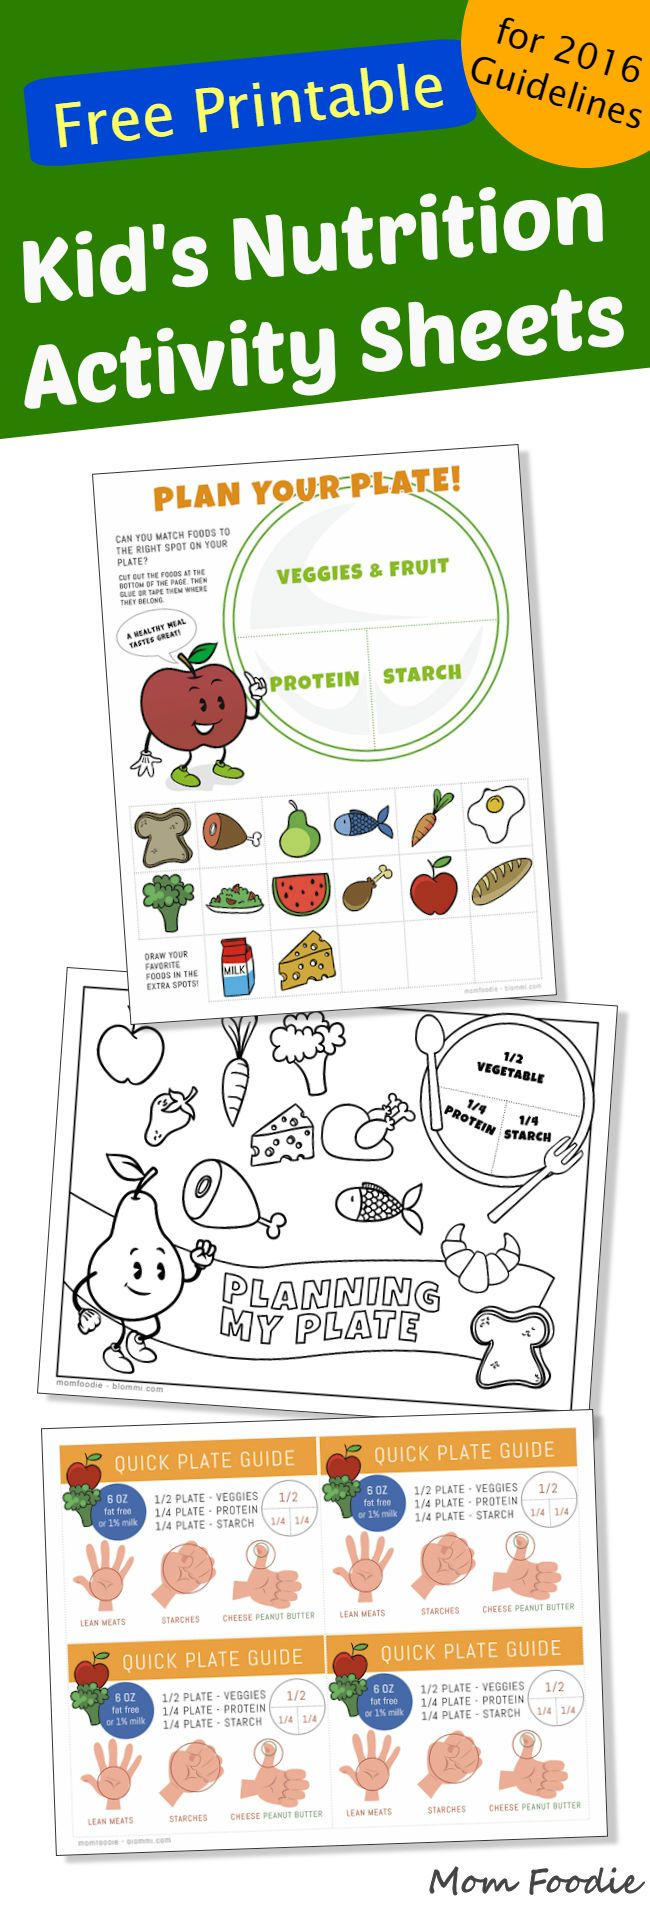 Printable Nutrition Activities for Kids #kidsnutrition